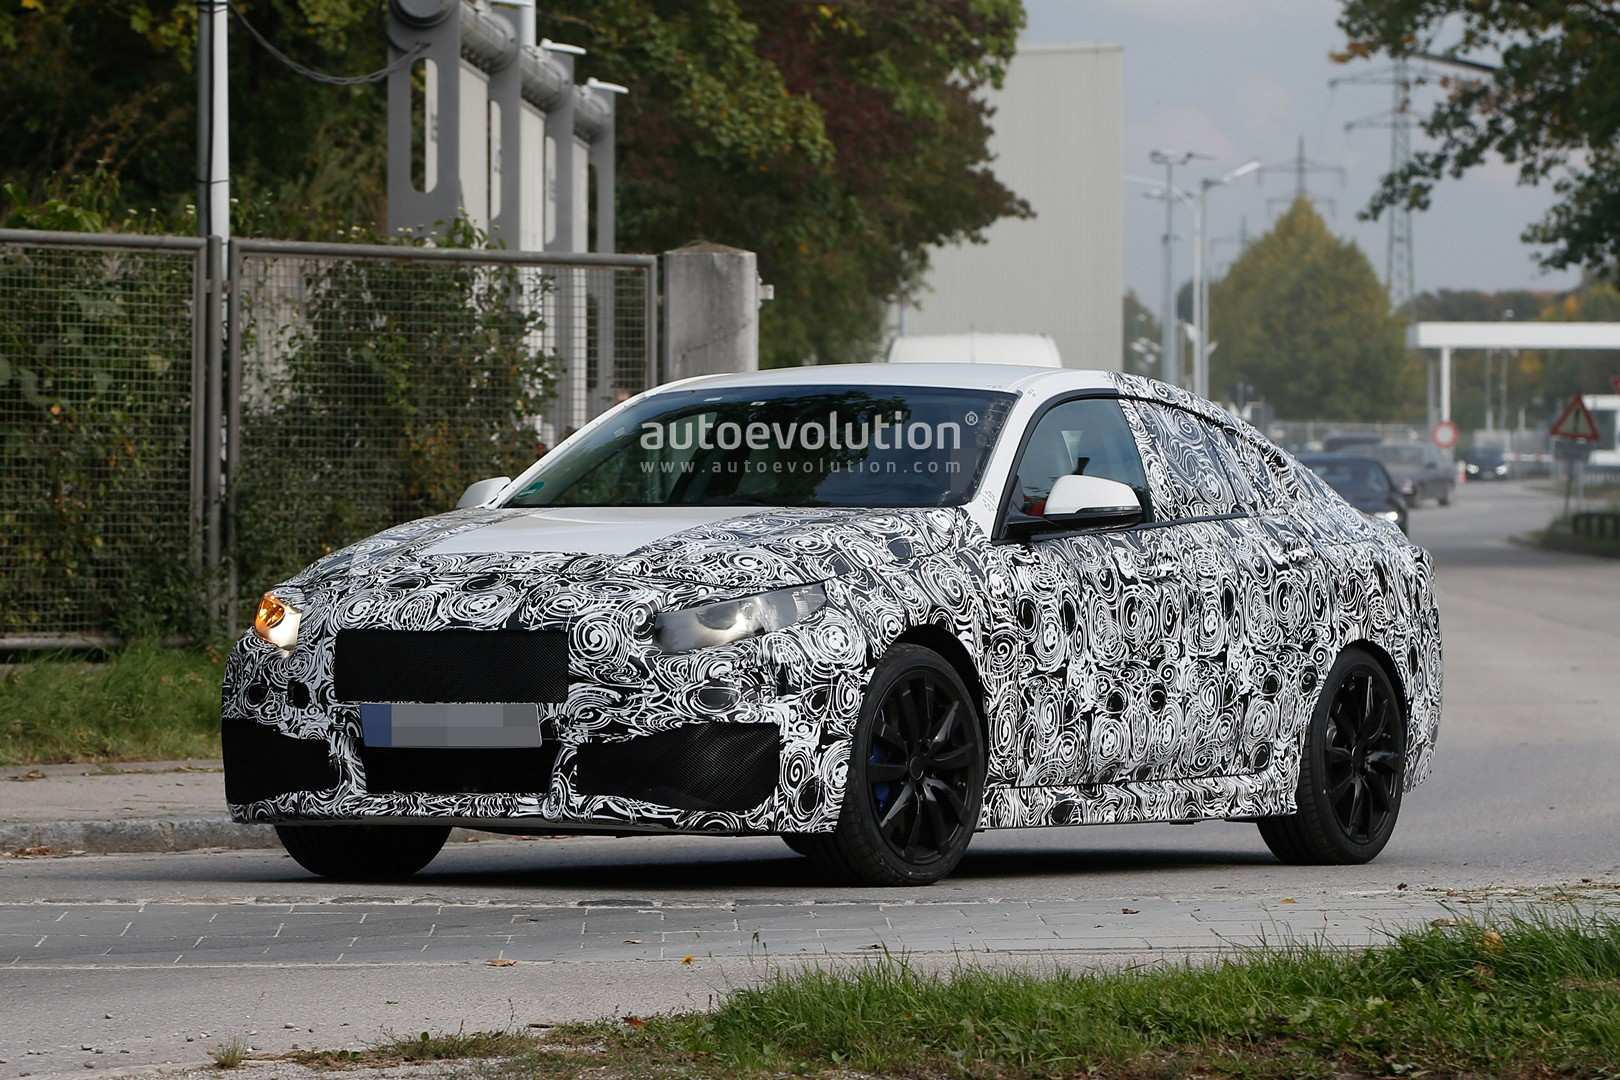 57 New 2019 Bmw 2 Series Coupe Price with 2019 Bmw 2 Series Coupe